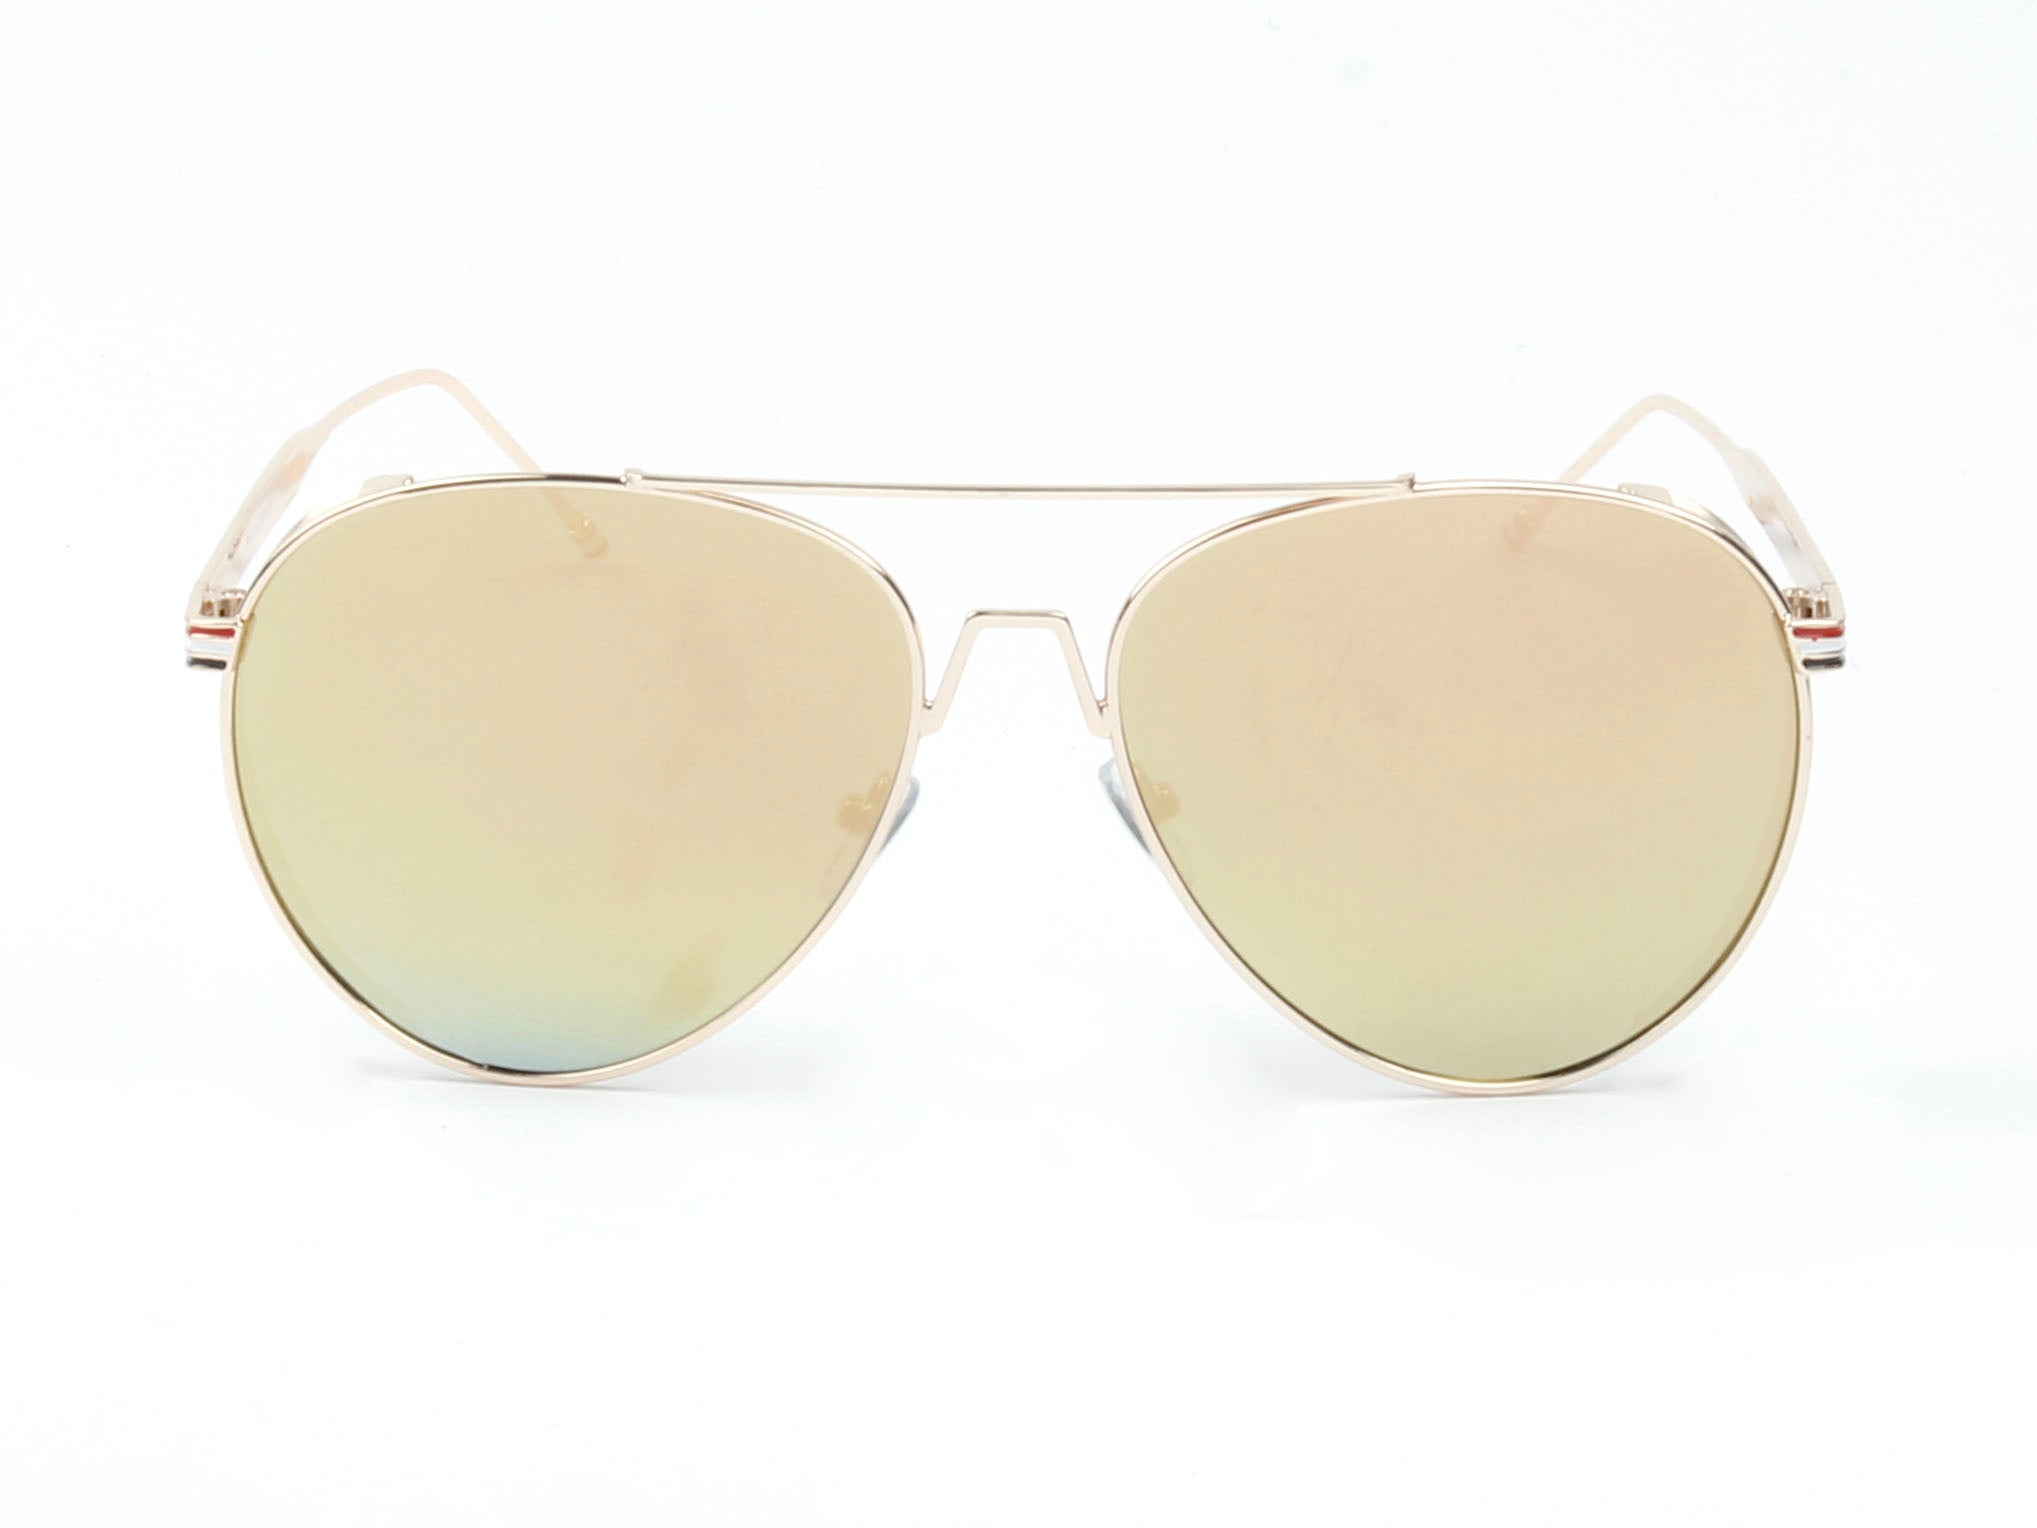 Classic Metal Aviator Fashion Sunglasses for Men and Women - Peach